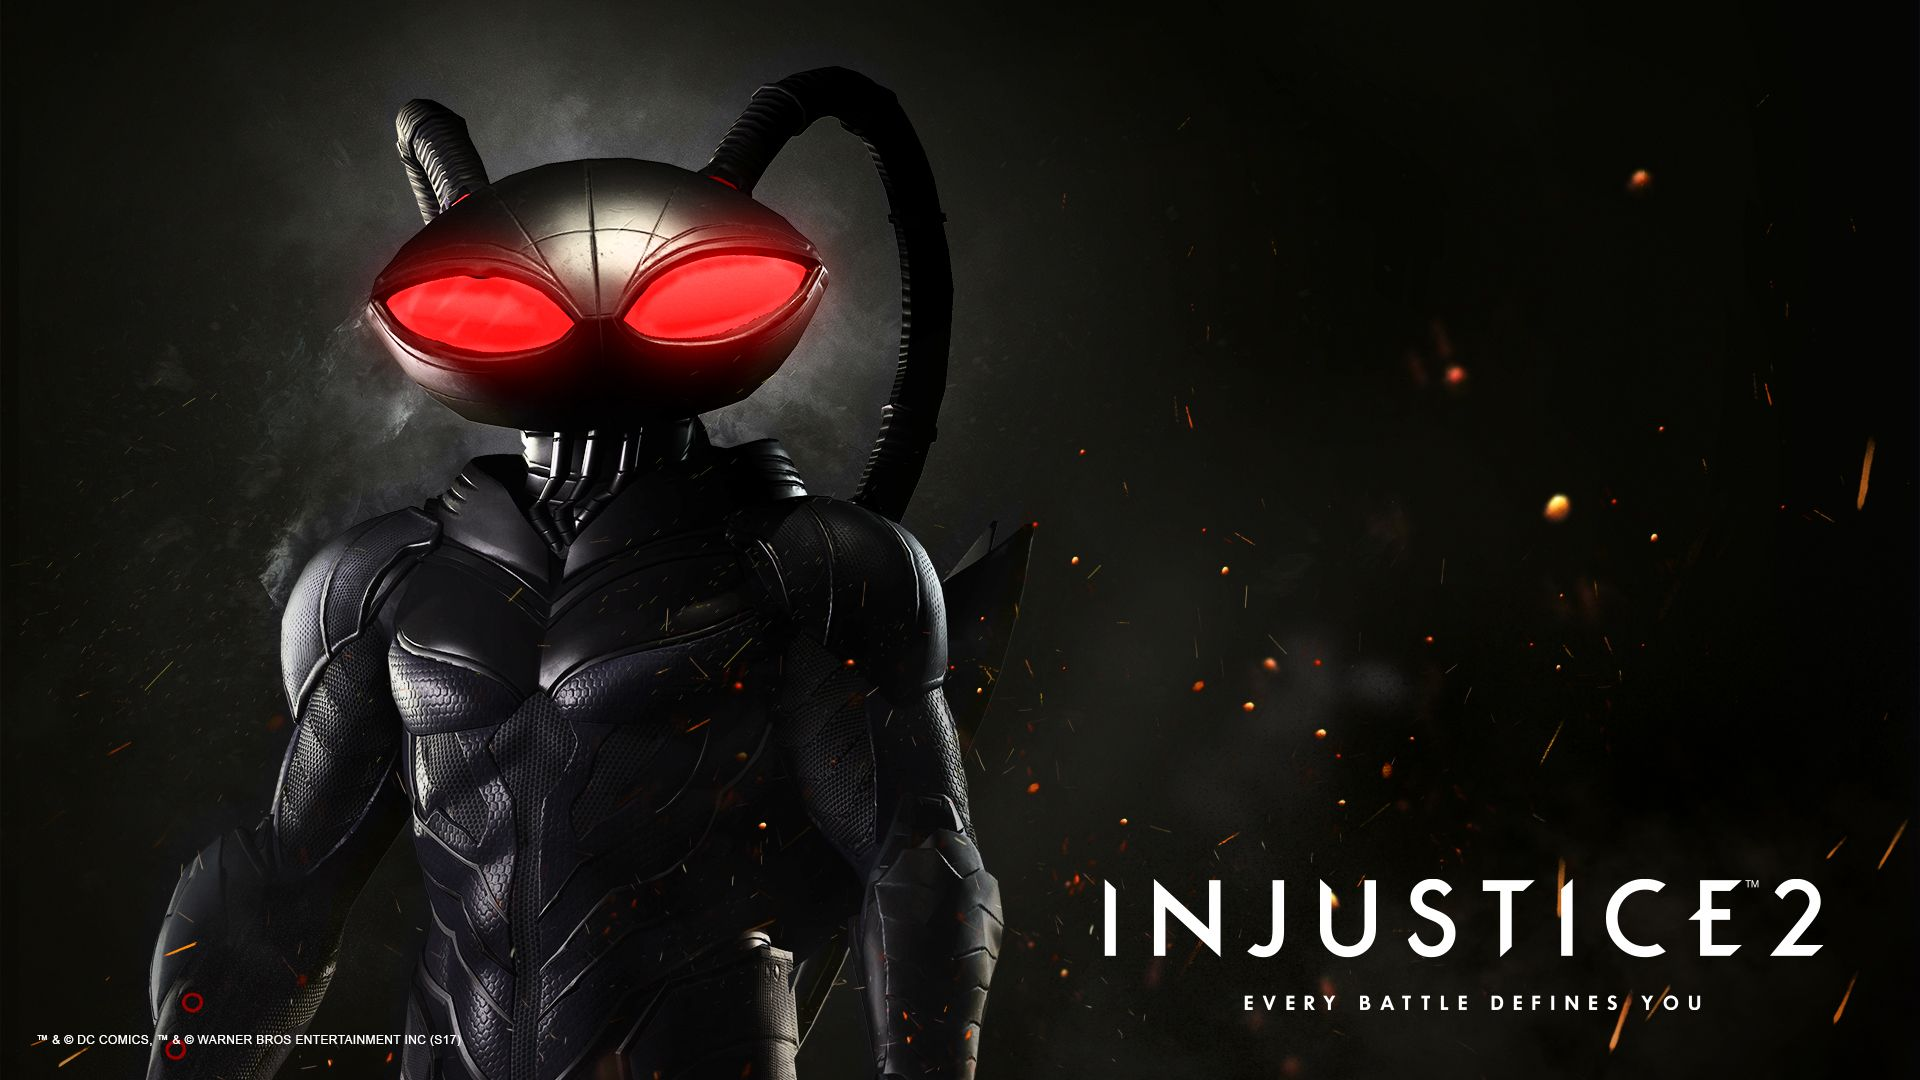 Black Manta (Injustice)